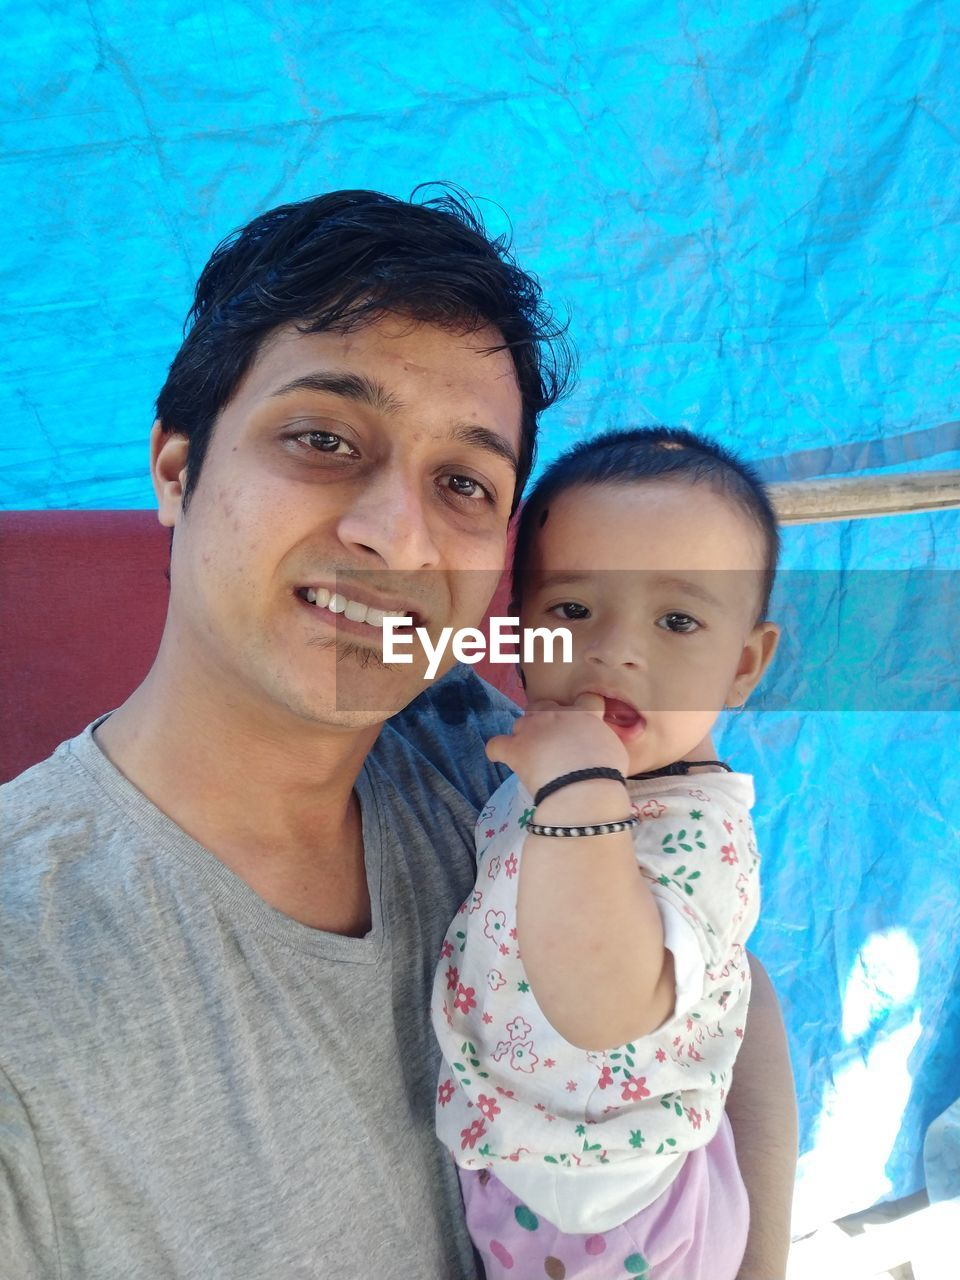 real people, looking at camera, baby, portrait, family with one child, togetherness, bonding, leisure activity, father, lifestyles, son, swimming pool, happiness, love, young adult, cute, childhood, day, indoors, smiling, young women, water, close-up